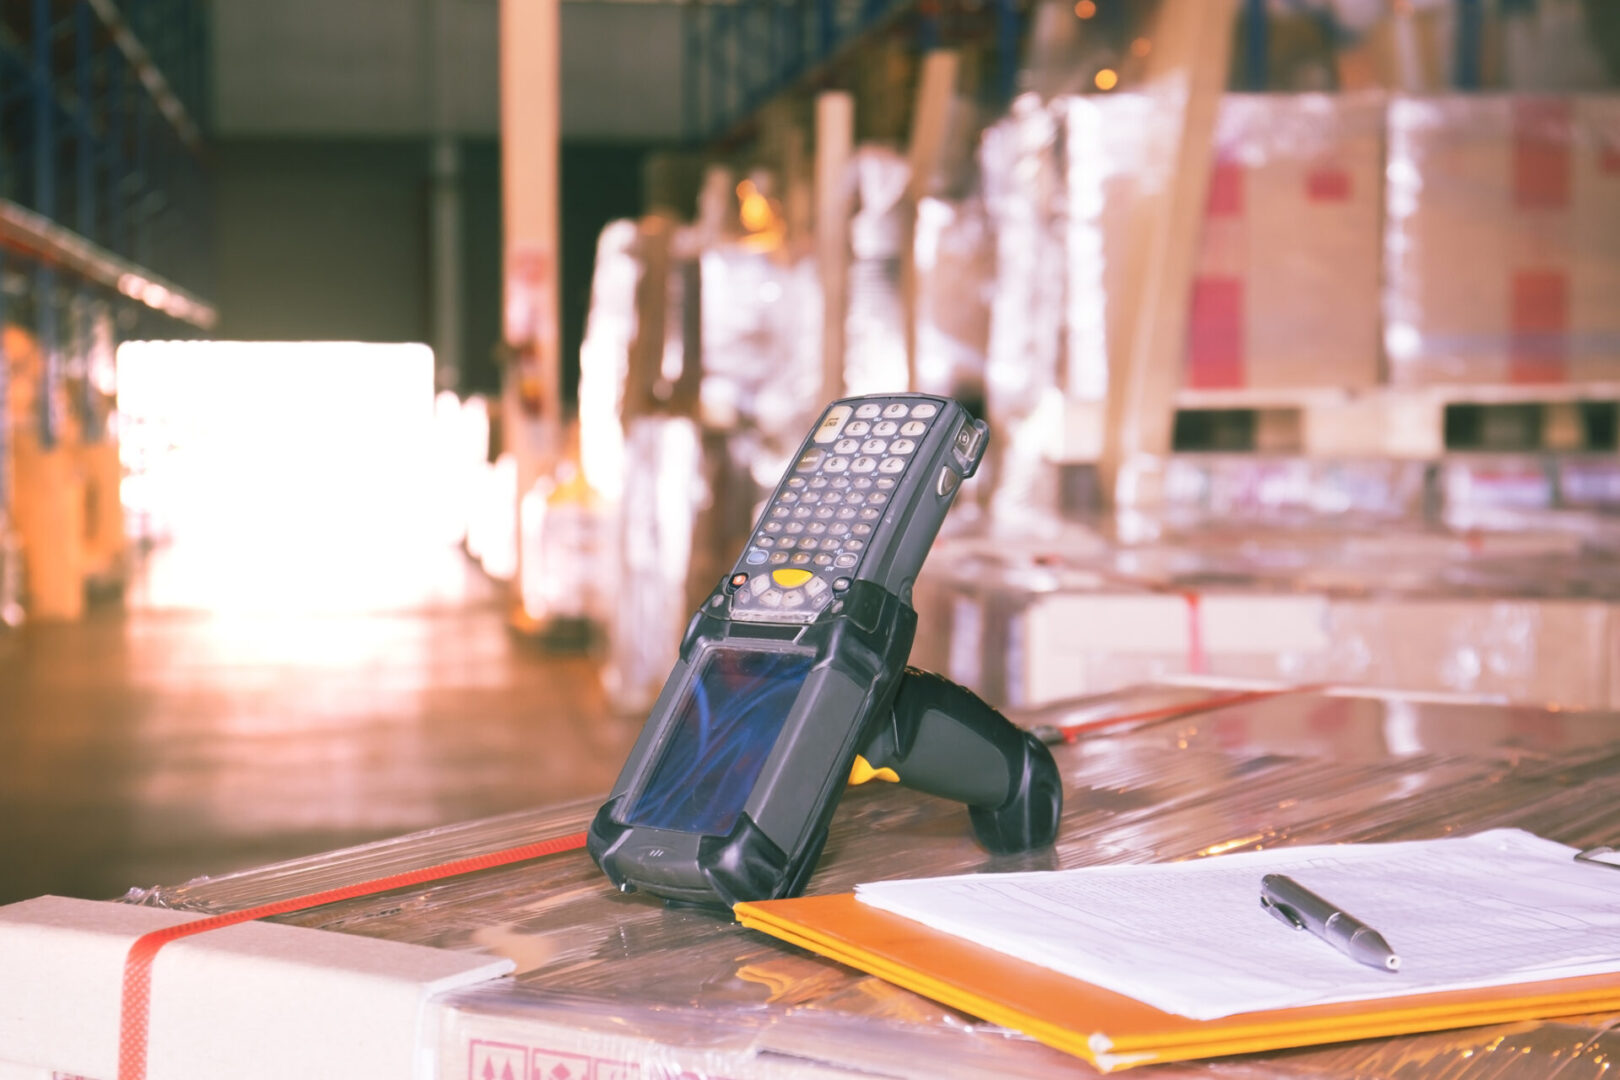 Bluetooth bar code scanner on package boxes at warehouse